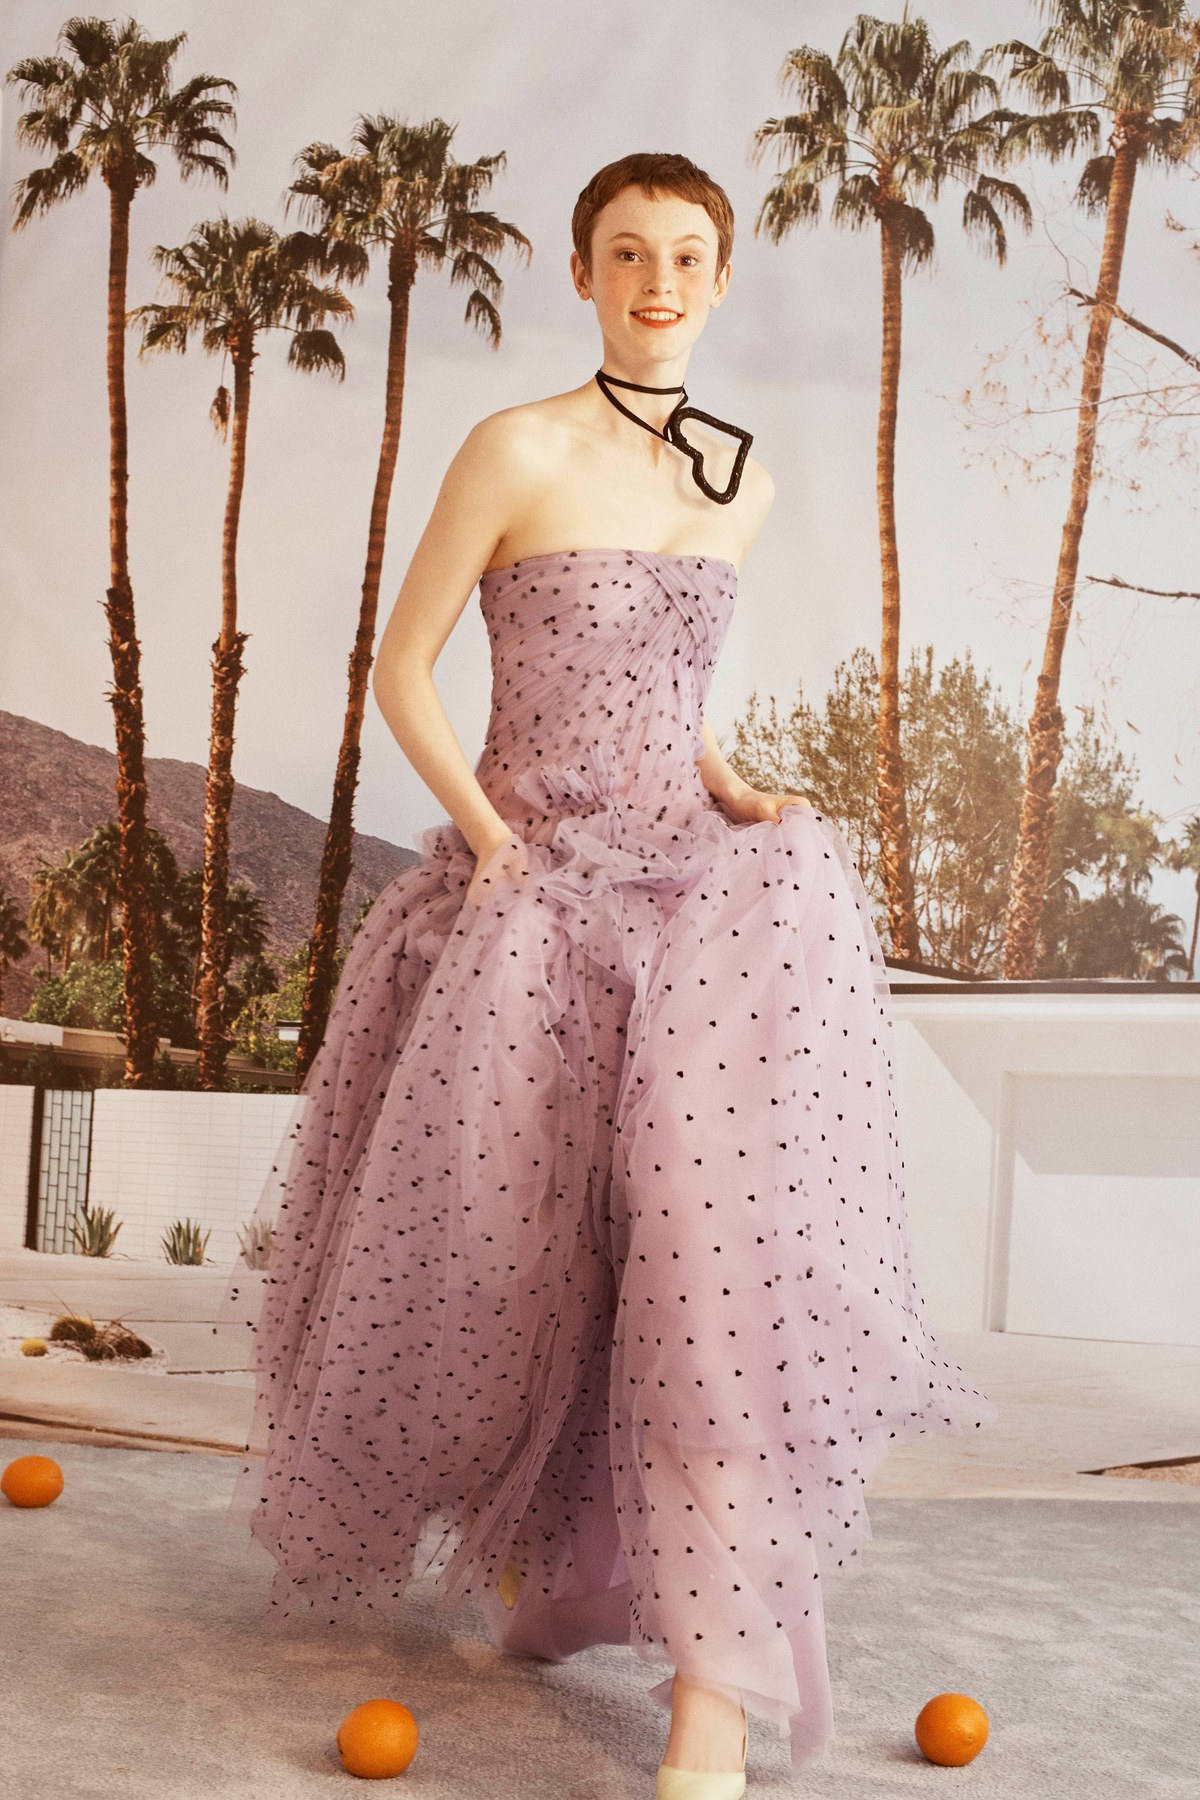 00027-carolina-herrera-vogue-resort-2019-pr.jpg